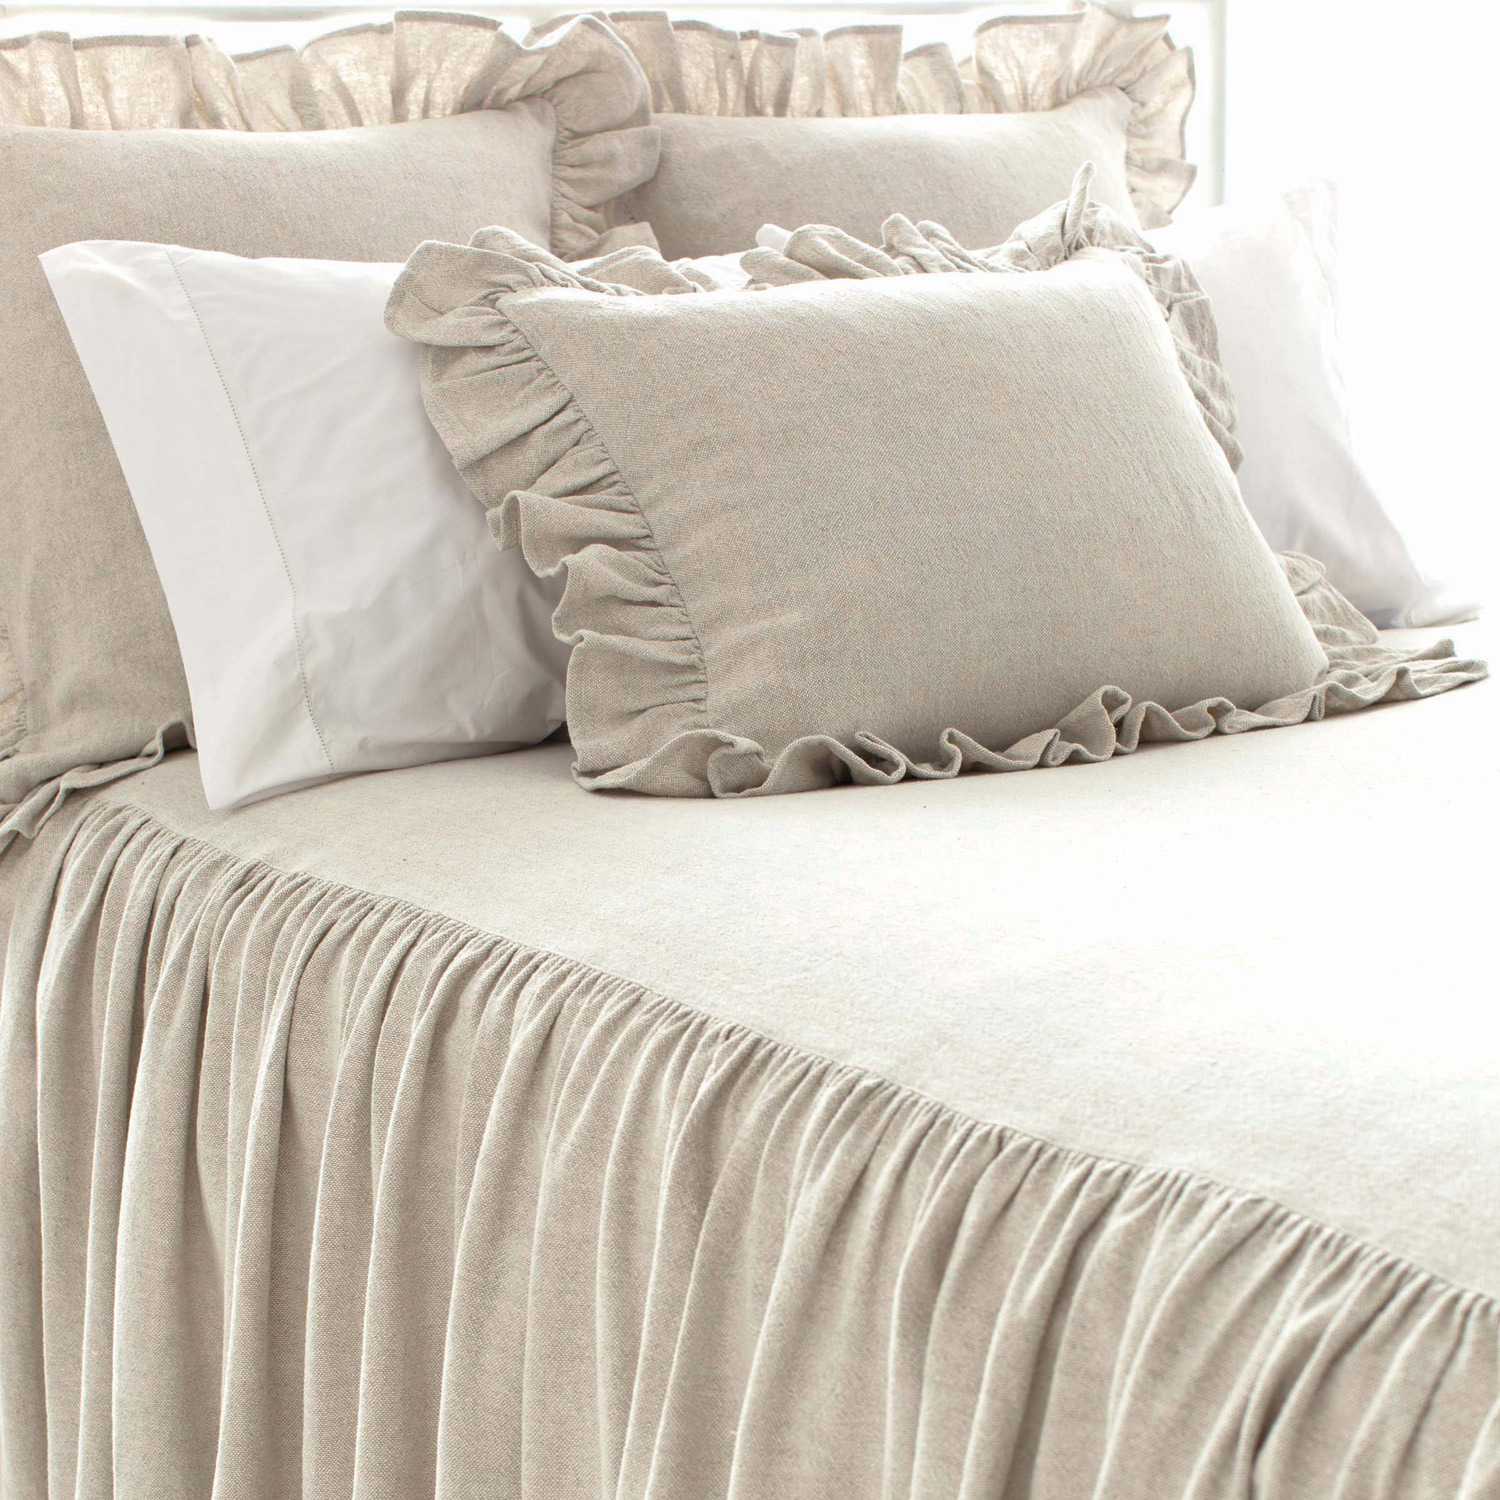 Lovely Pine Cone Hill Bedding For Interesting Bed Ideas: Lovely Pine Cone Hill Bedding In Ivory For Bed Ideas